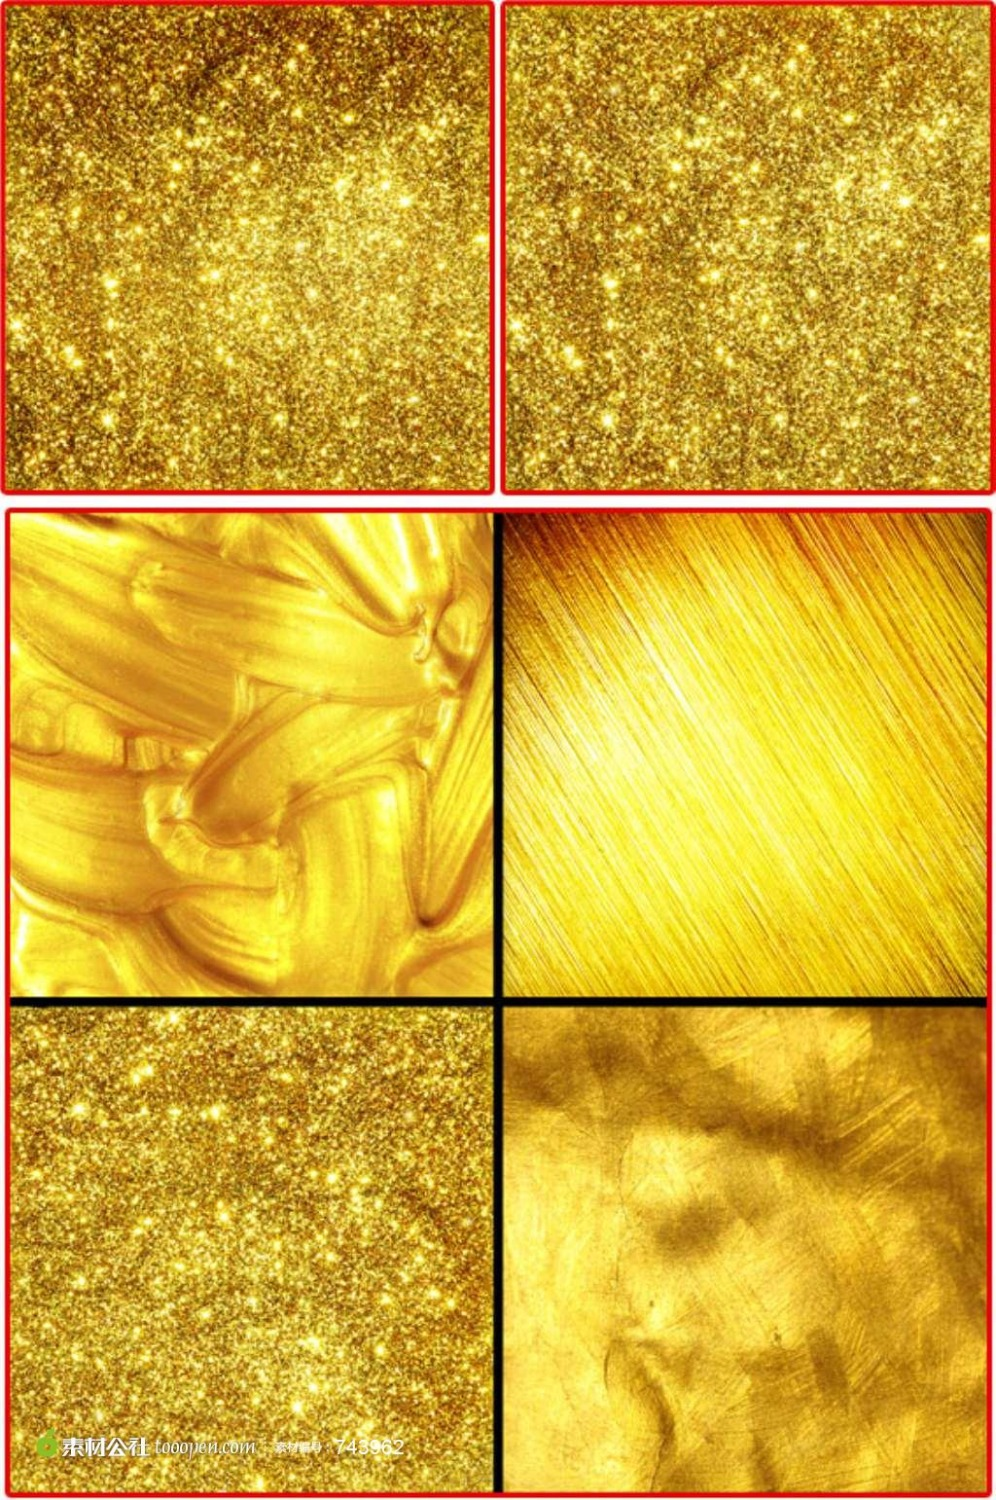 500g Lot Gold Powder Pigment For Diy Nail Decoration Gold Coating Powder Gold Paint Pigment